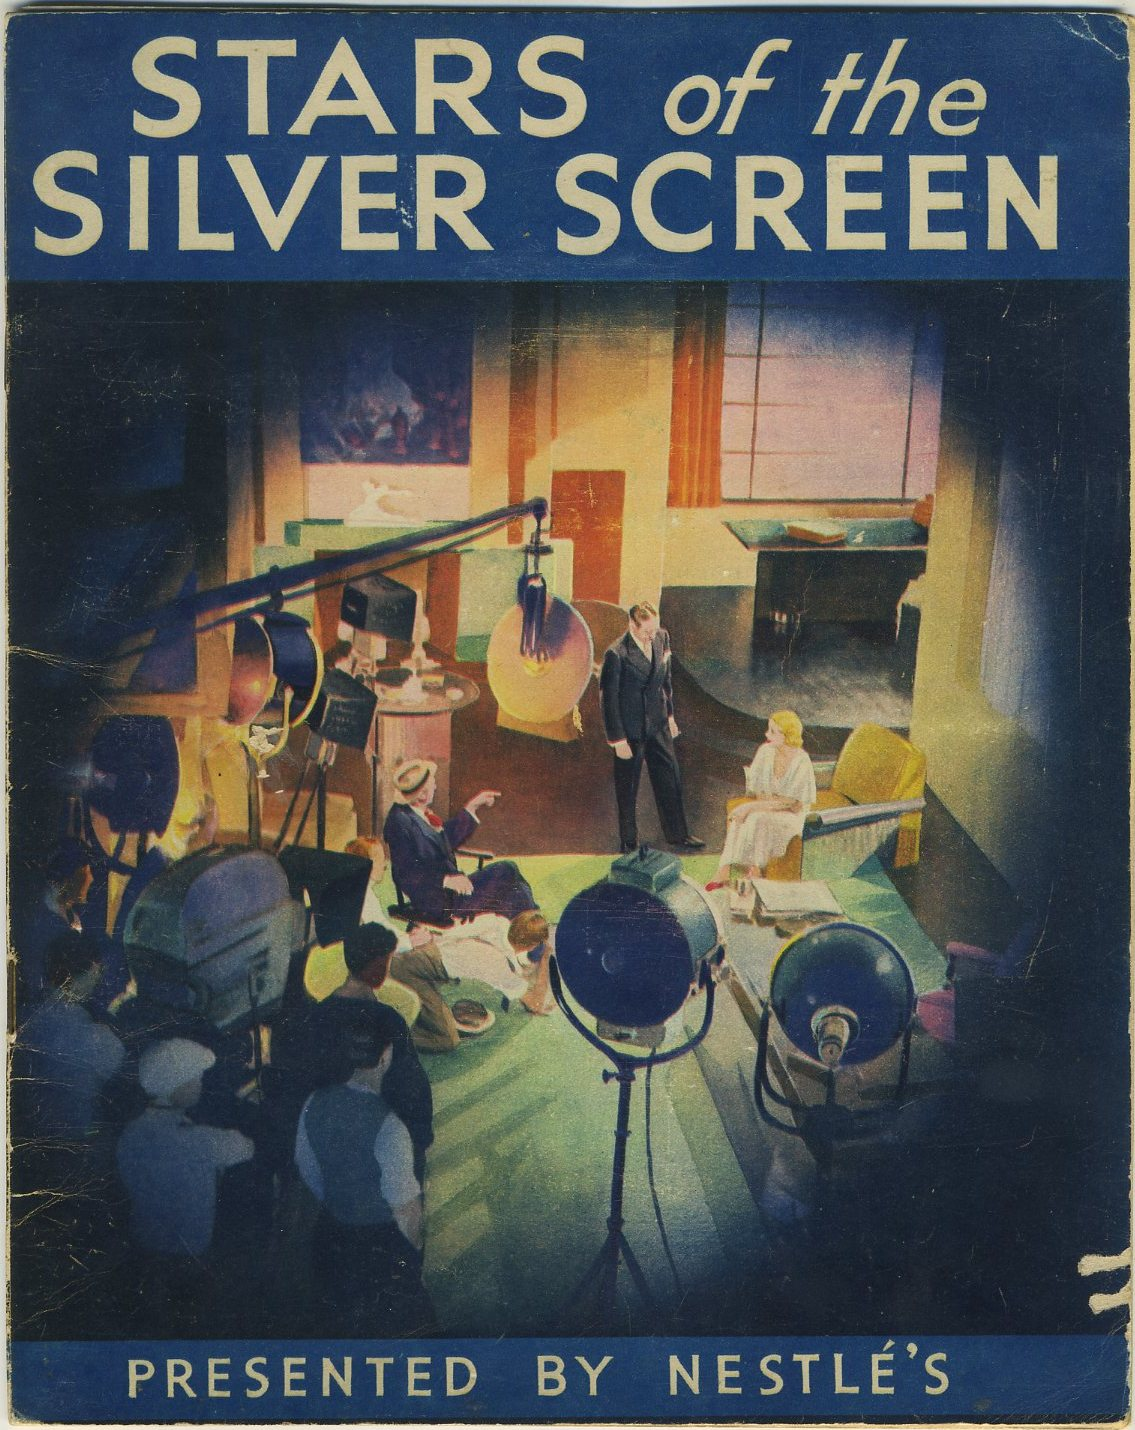 Front cover of the 1936 Nestle Stars of the Silver Screen Album